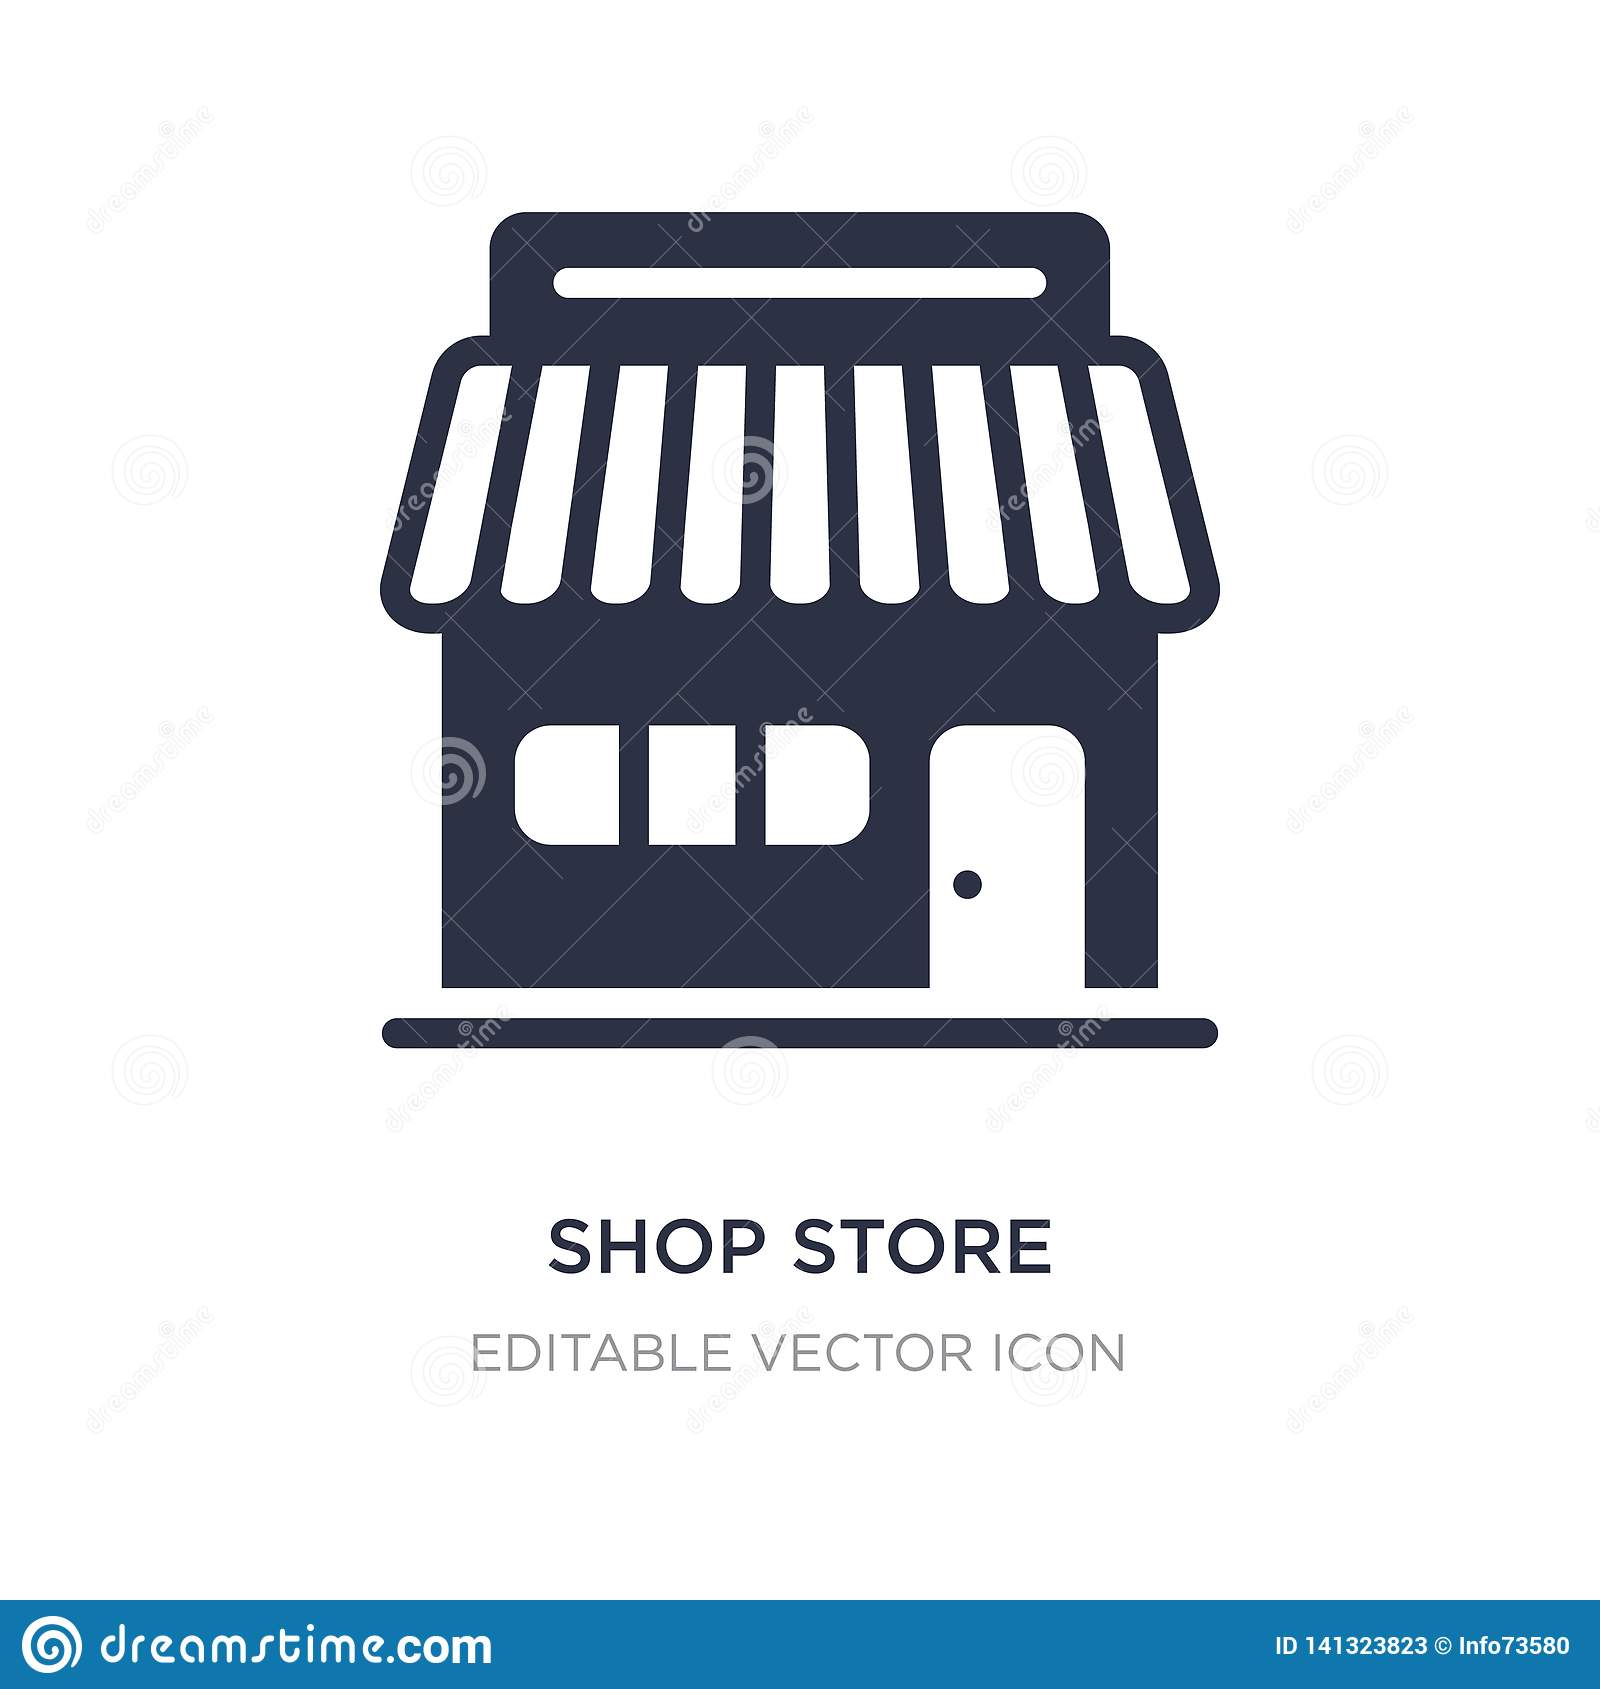 shop store icon on white background. Simple element illustration from Commerce concept